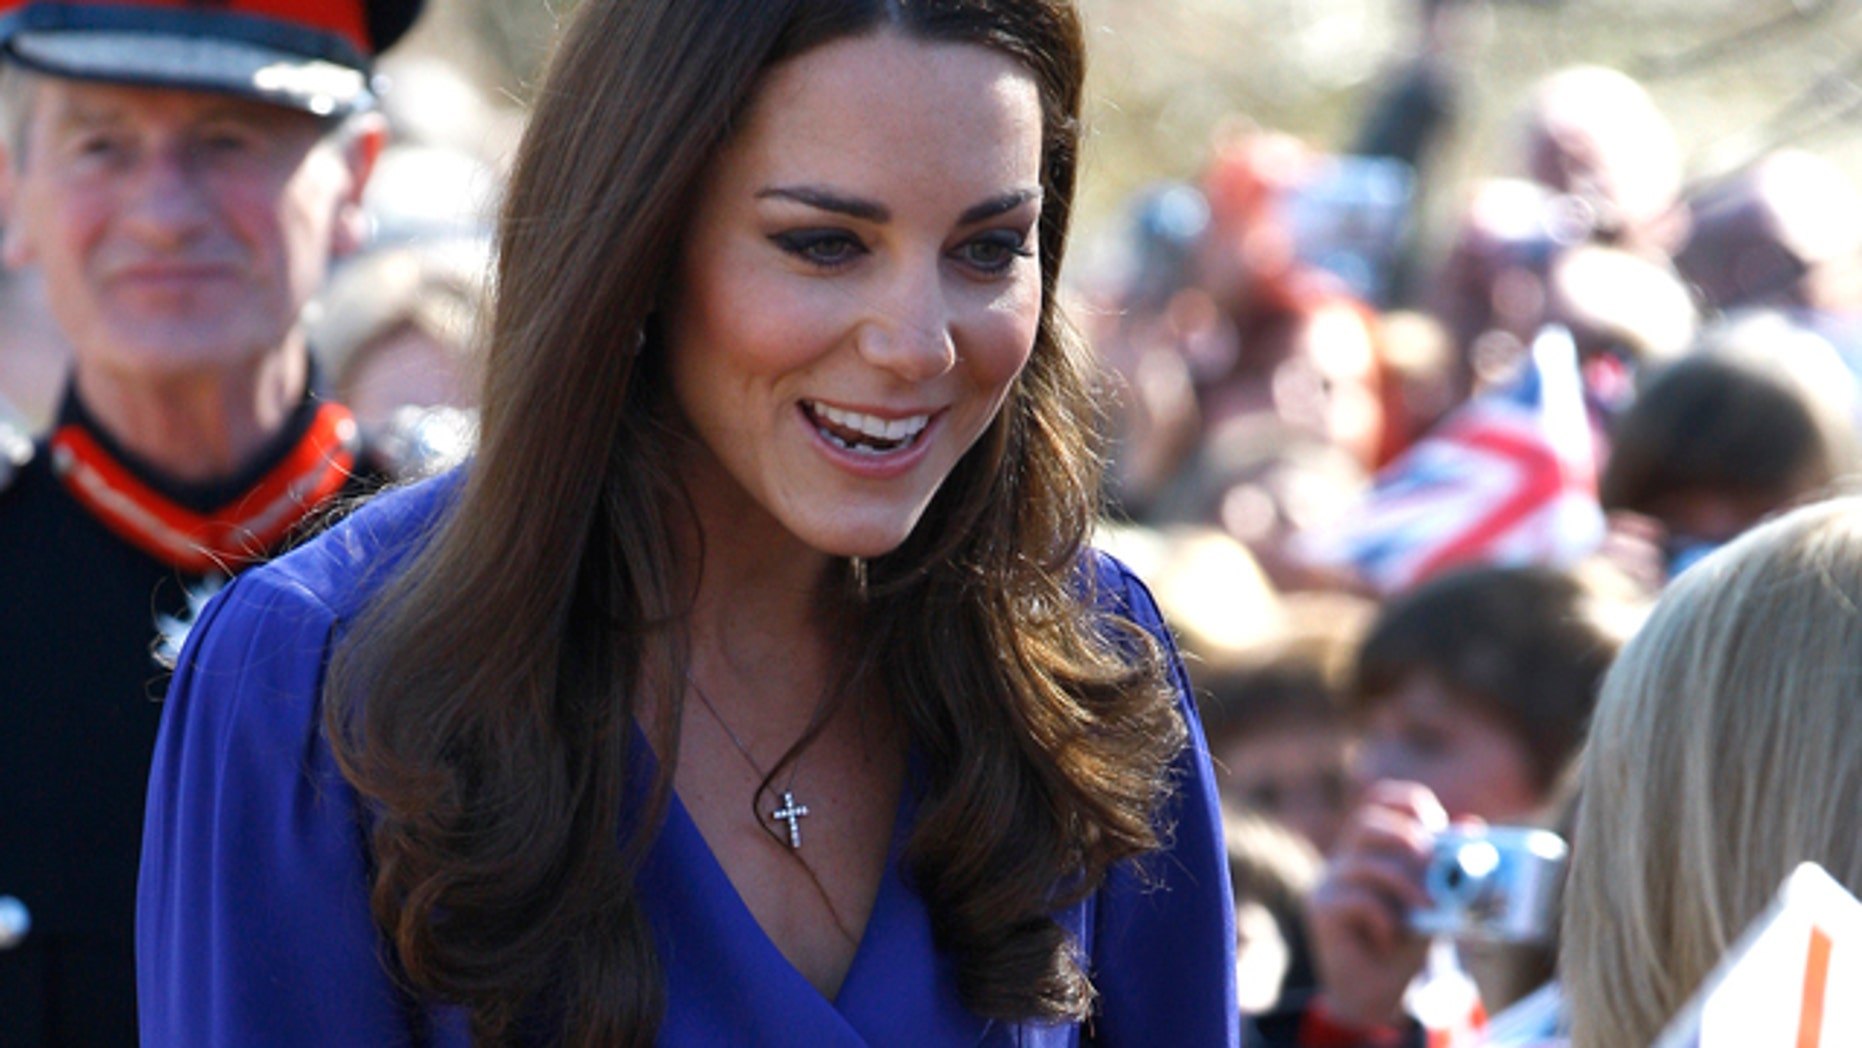 March 19, 2012: Britain's Duchess of Cambridge meets members of the public as she arrives at The Treehouse in Ipswich, England.